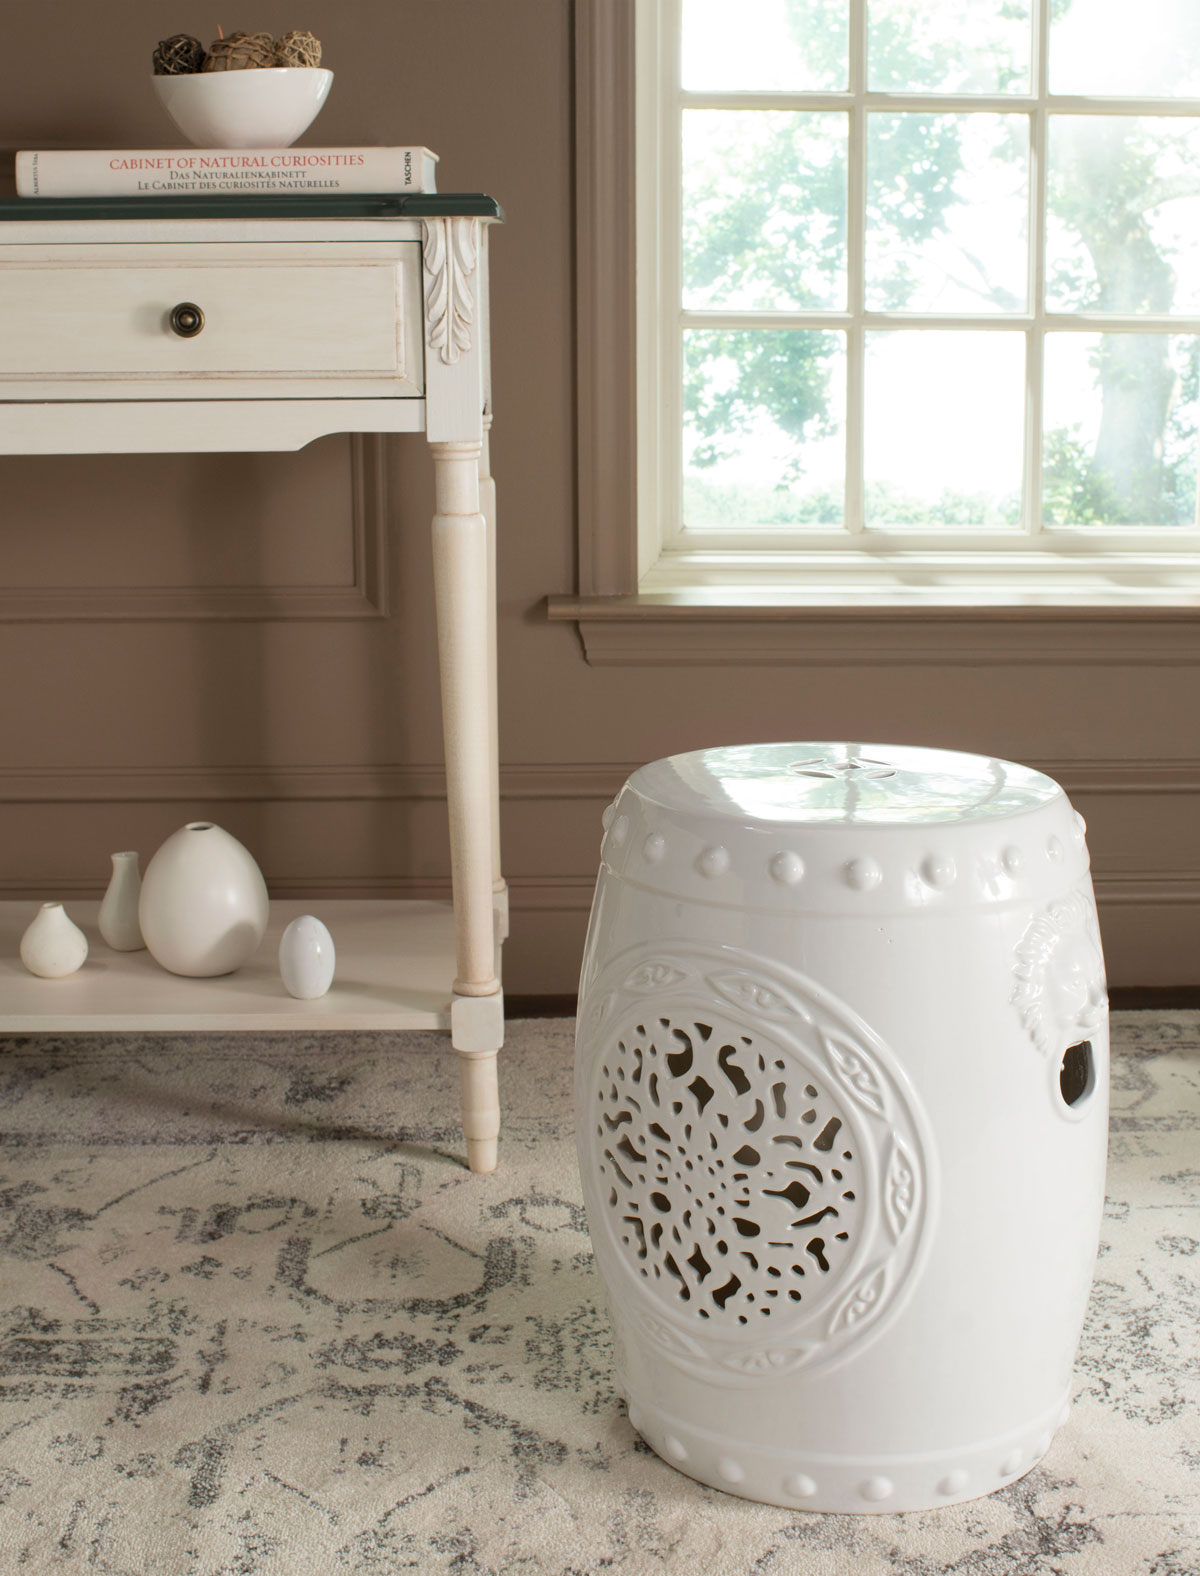 Global Influences Abound In The Dazzling White Glazed Ceramic Flower Drum  Indoor Outdoor Garden Stool. Classic Chinese Vessel Nailheads And A Lucky  Coin Top ...